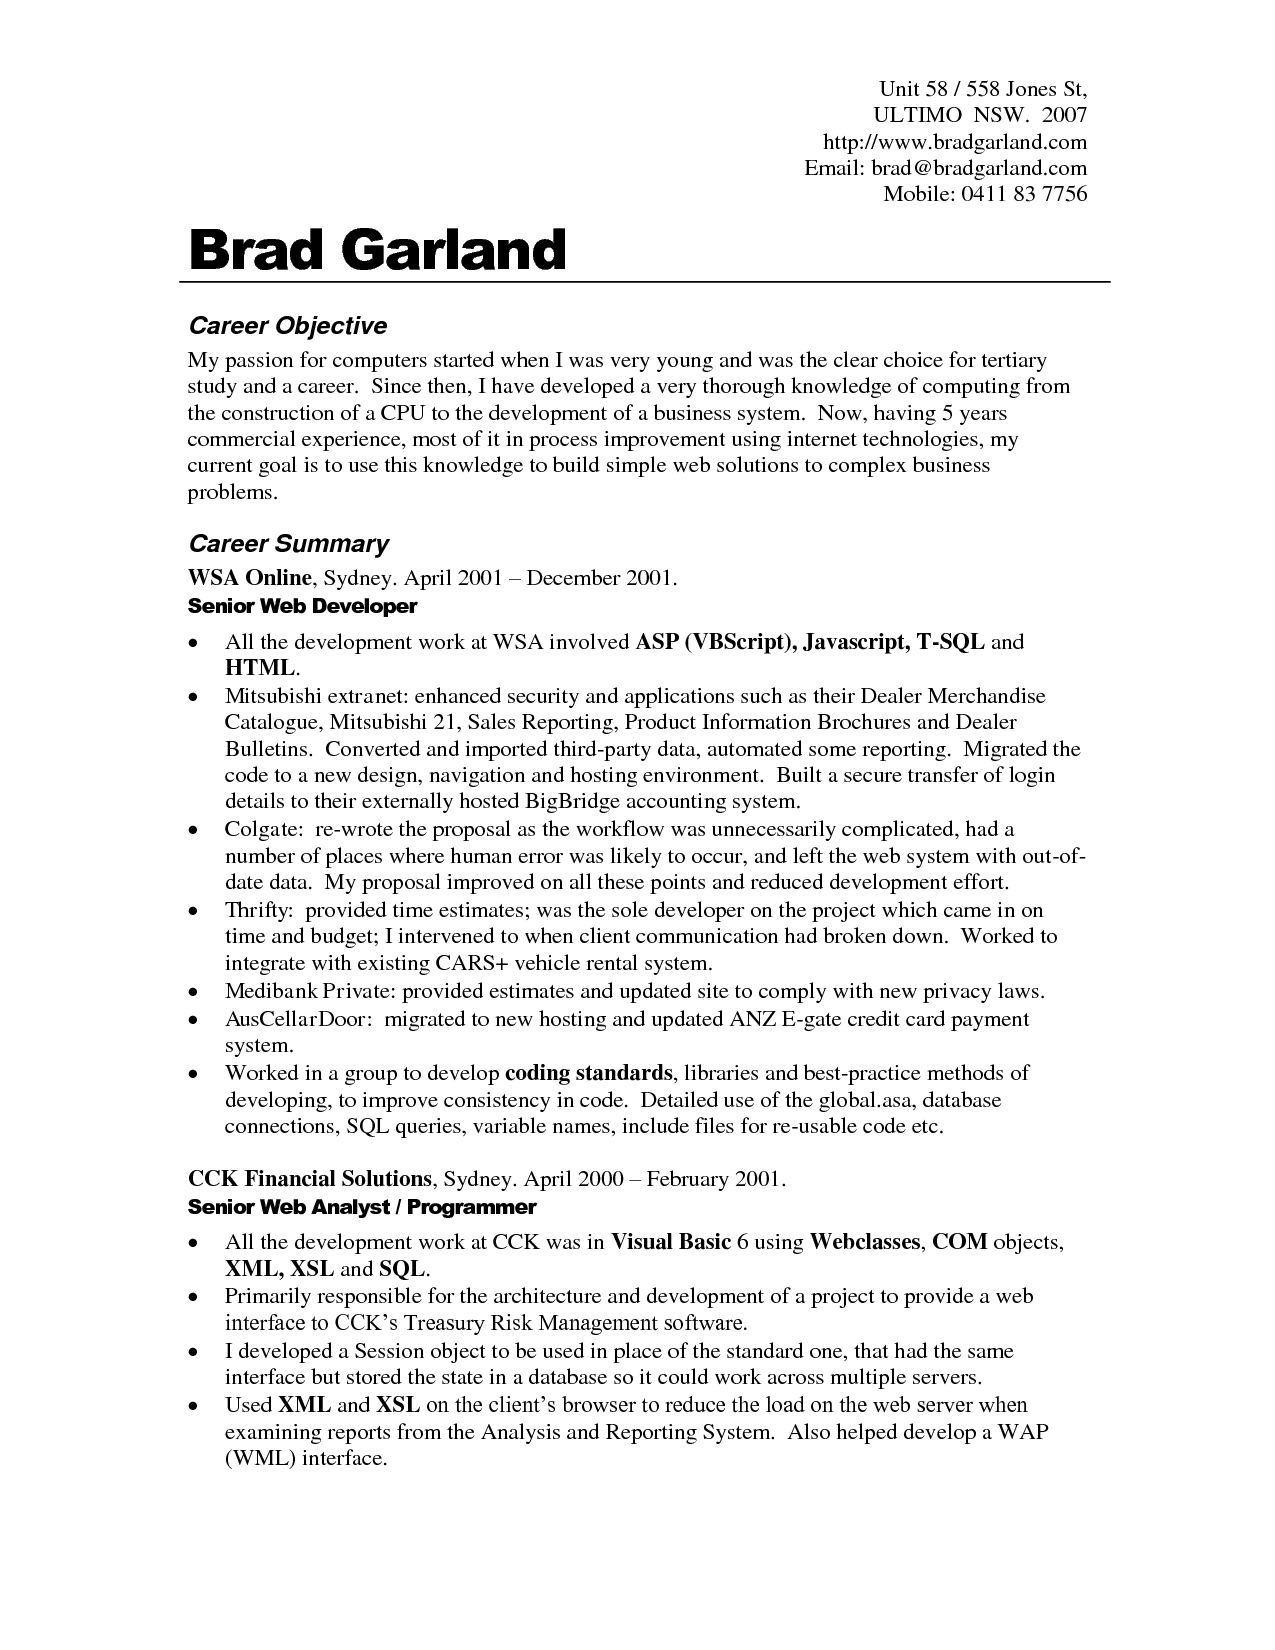 Samples Of Objectives For A Resume Endearing Resume Examples Job Objective  Sample Resume Entry Level And .